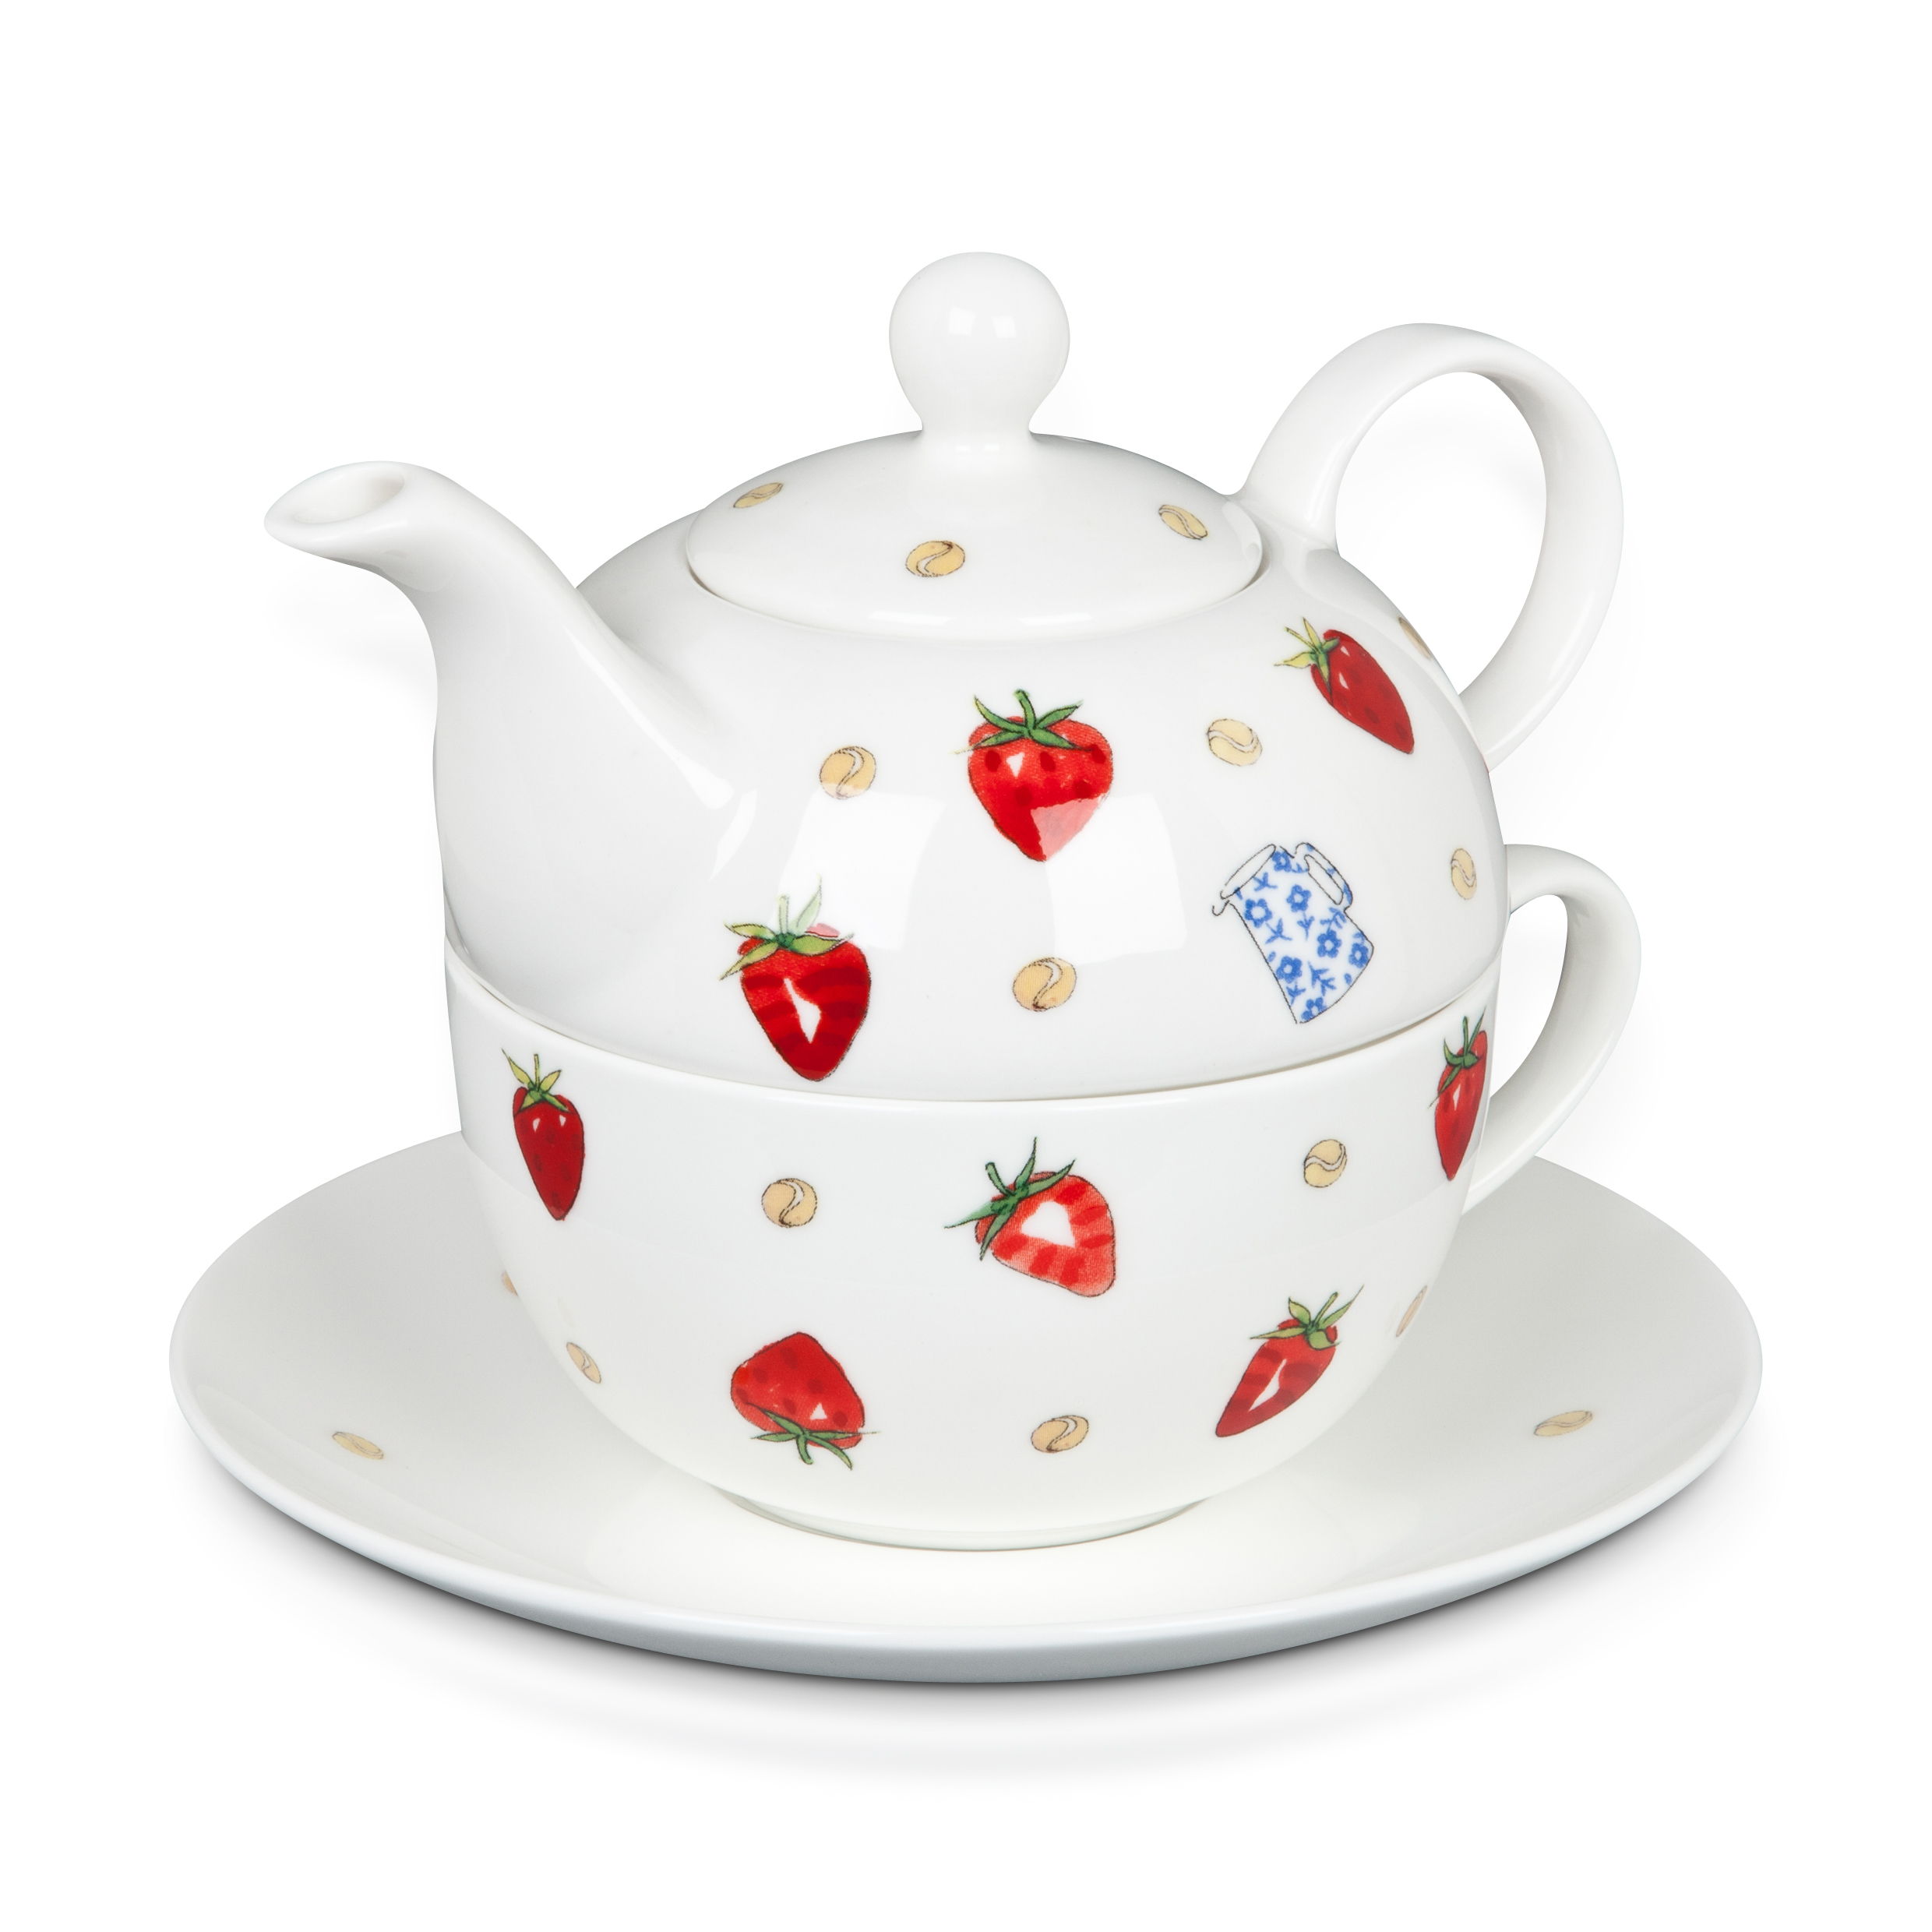 Wimbledon Strawberries and Cream Tea for One Set - White